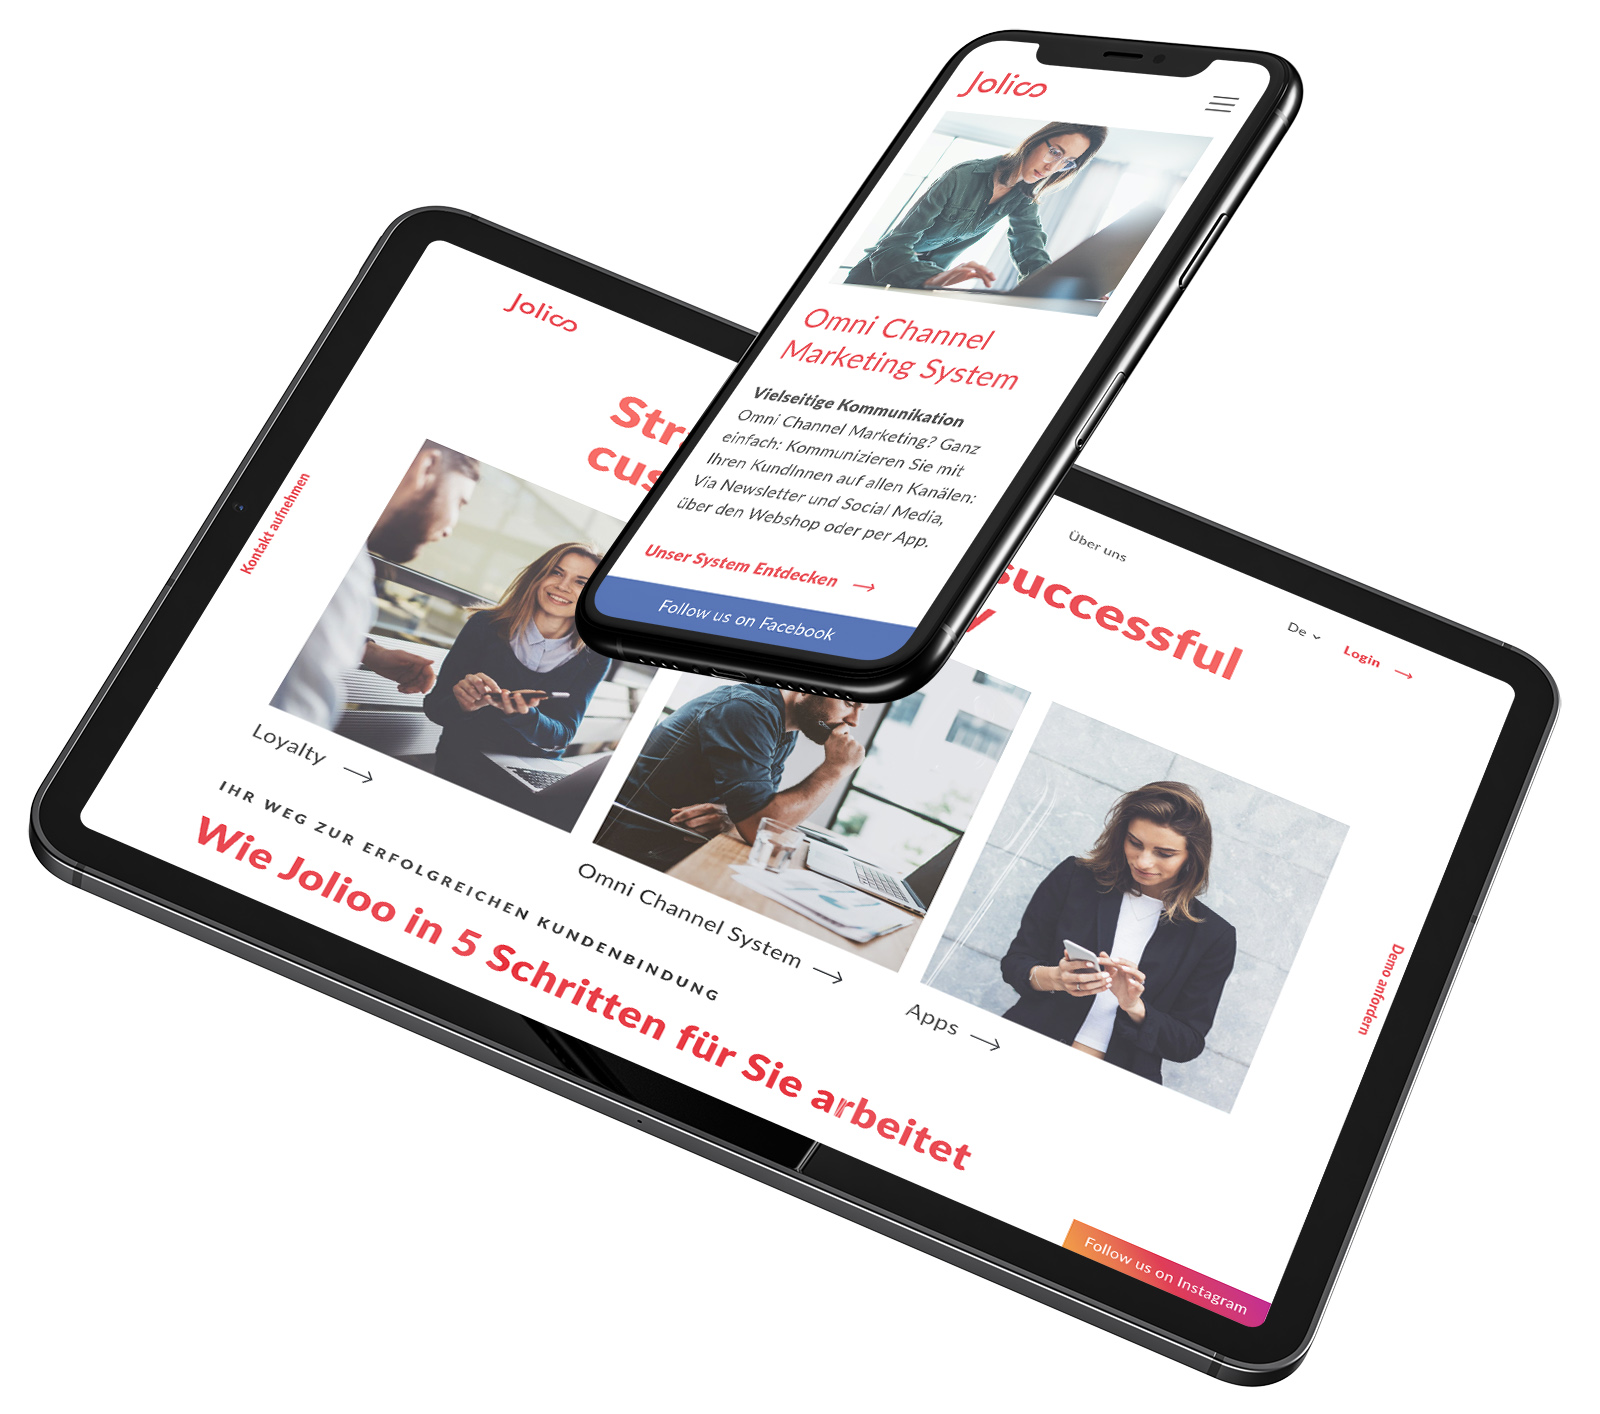 Jolioo Screendesign Mockup auf Handy und Tablet